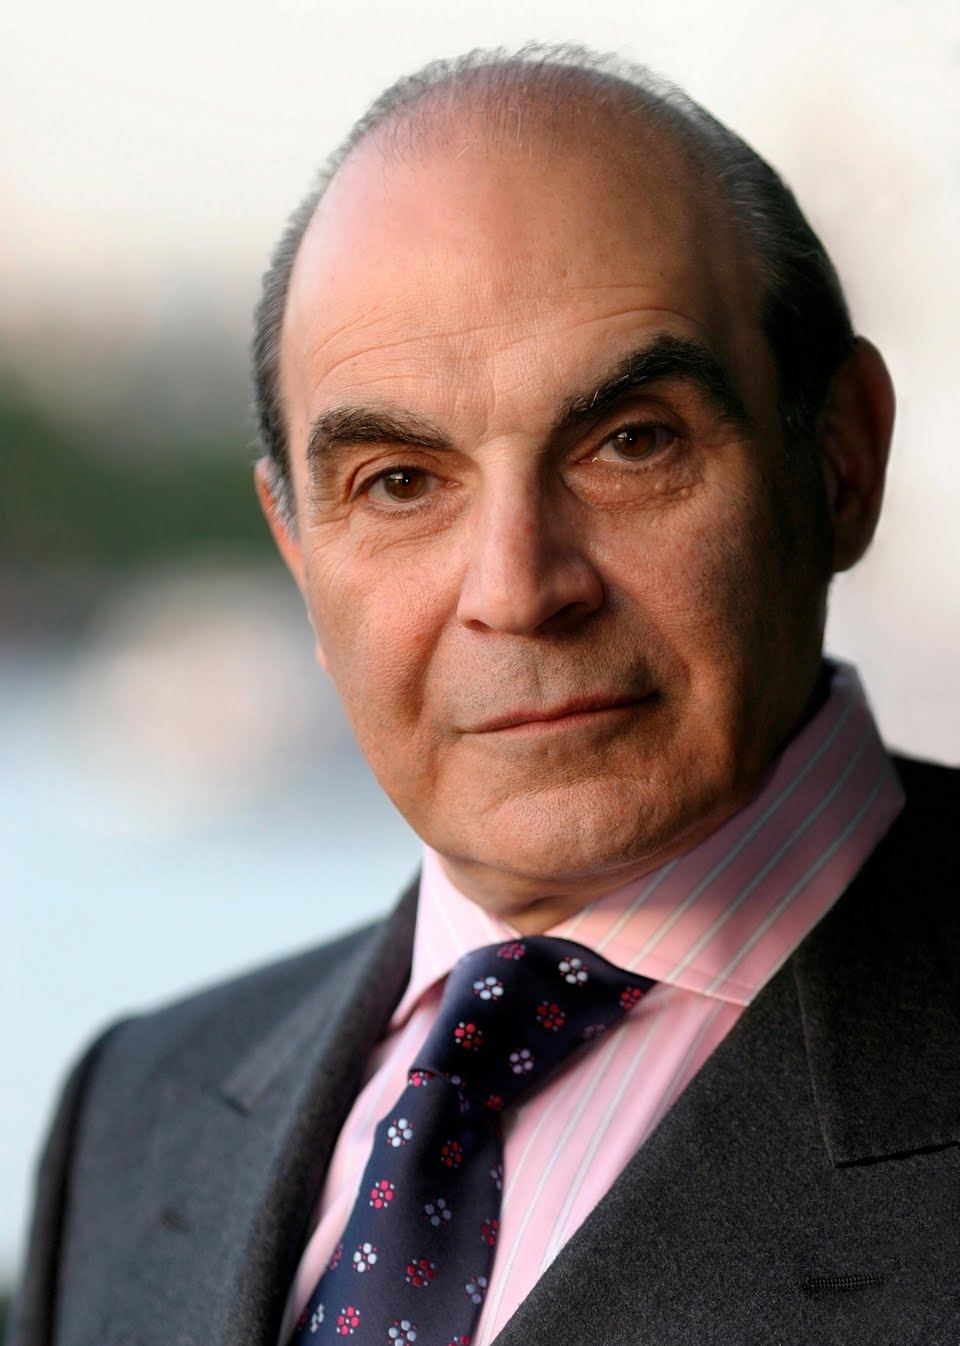 David Suchet Net Worth